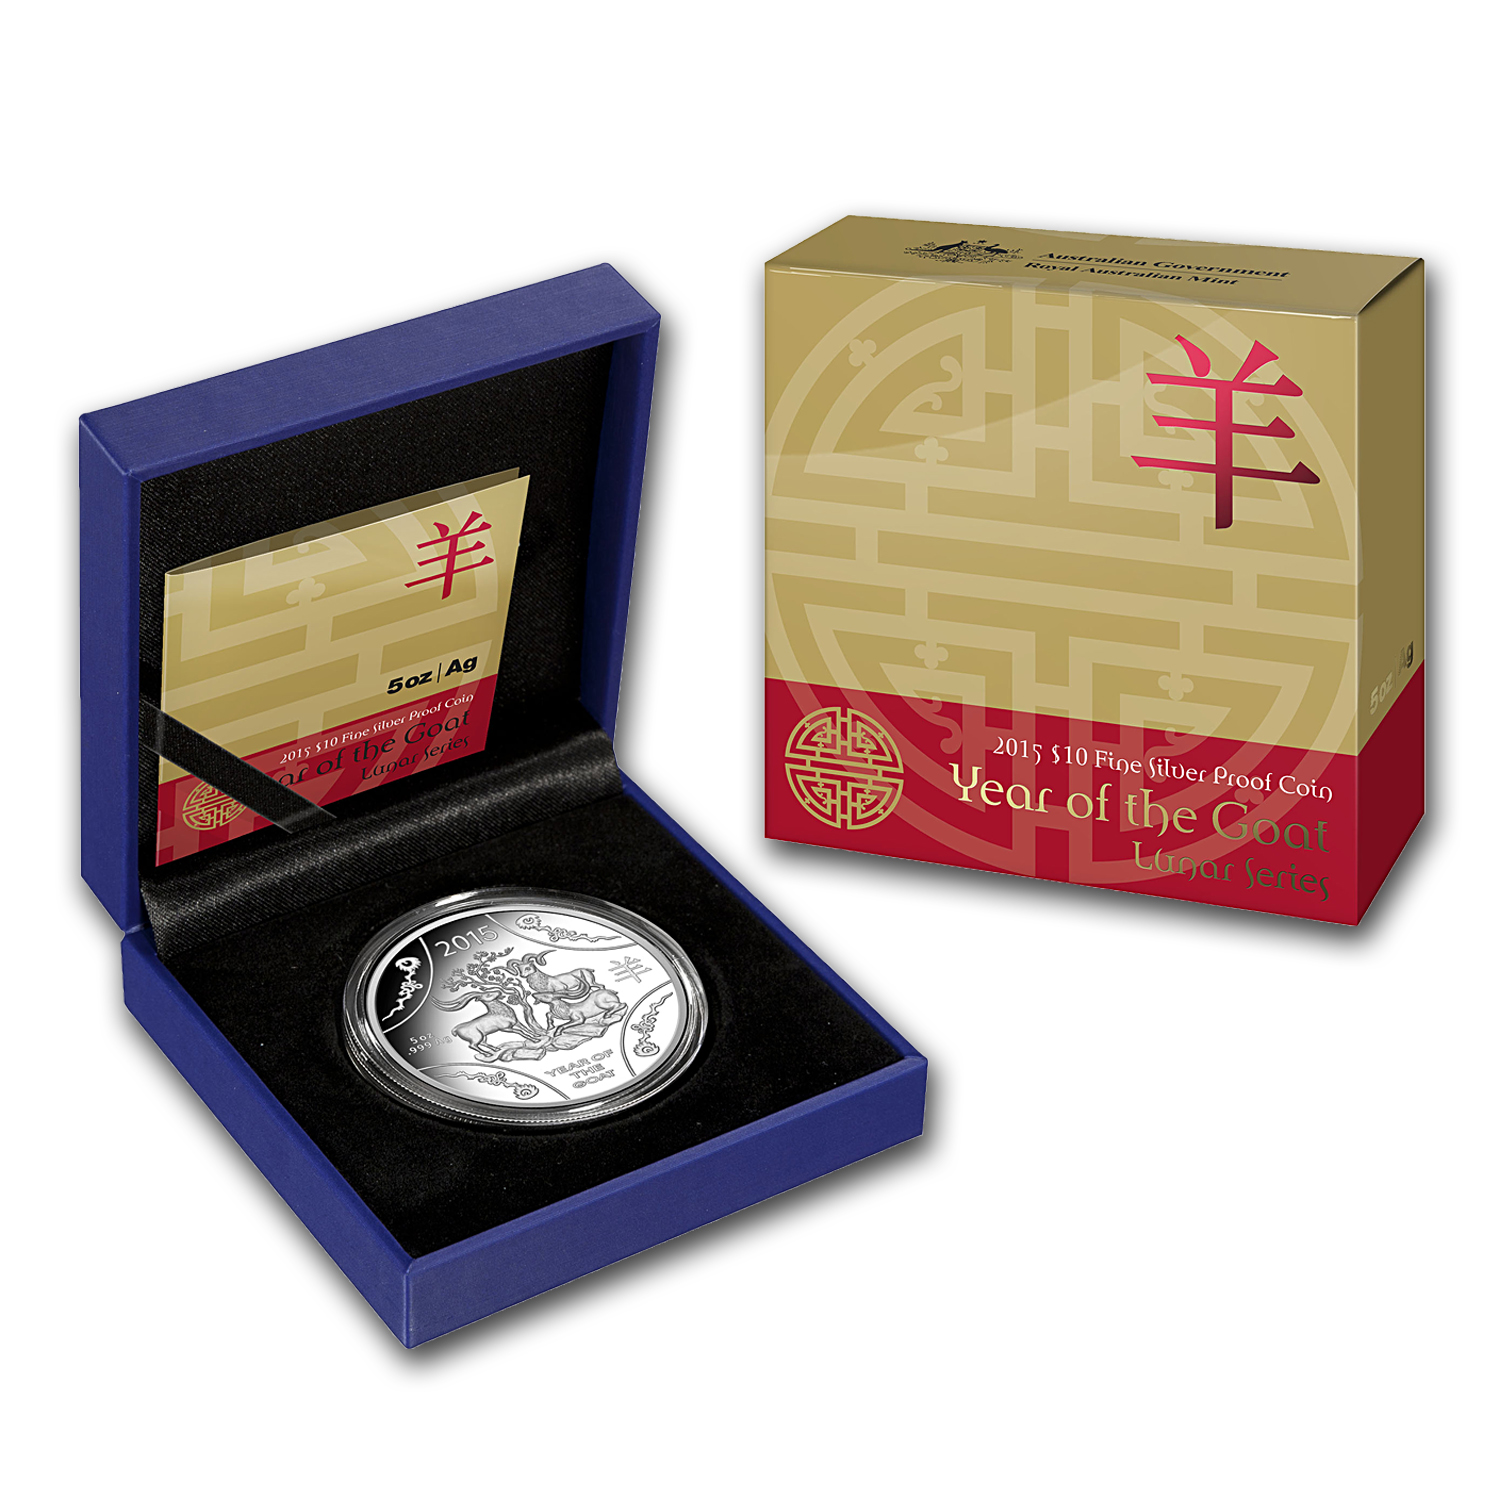 Royal Australian 2015 Year of the Goat - 5 oz Silver Proof